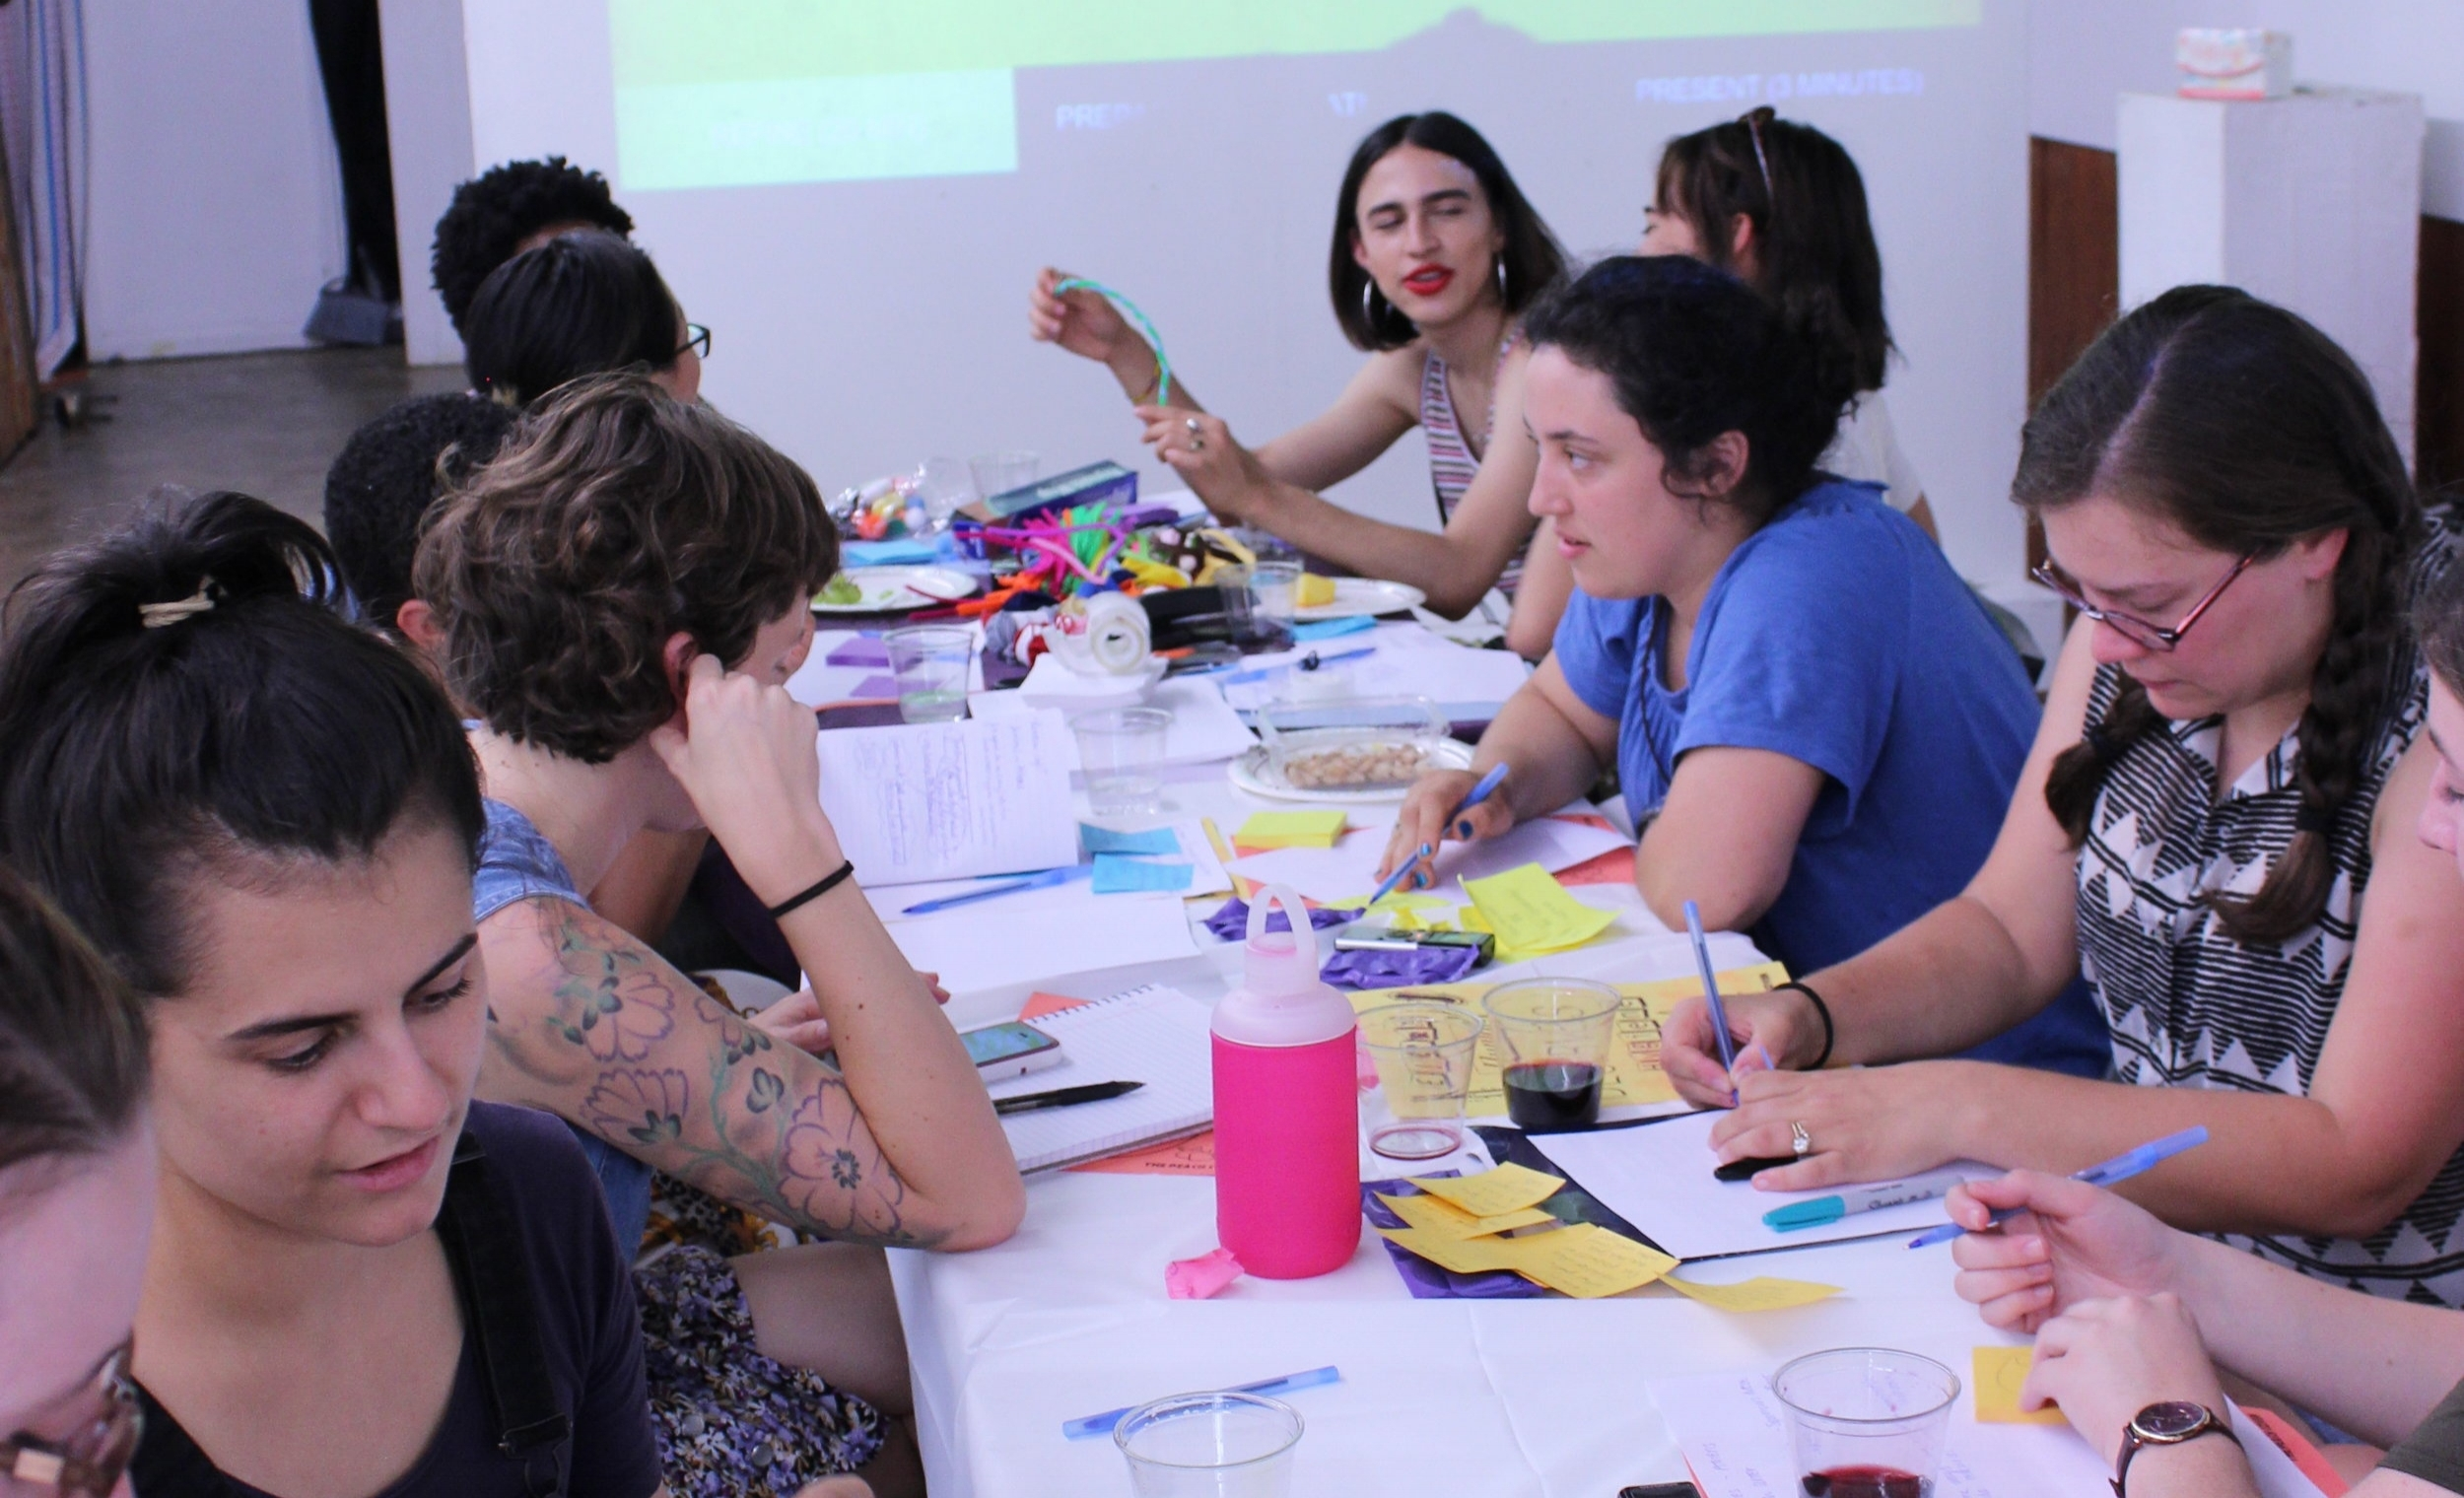 A design workshop gathering members of grassroots organizations and health workers together to imagine new policies, design, and systems meant to improve menstrual resource accessibility.